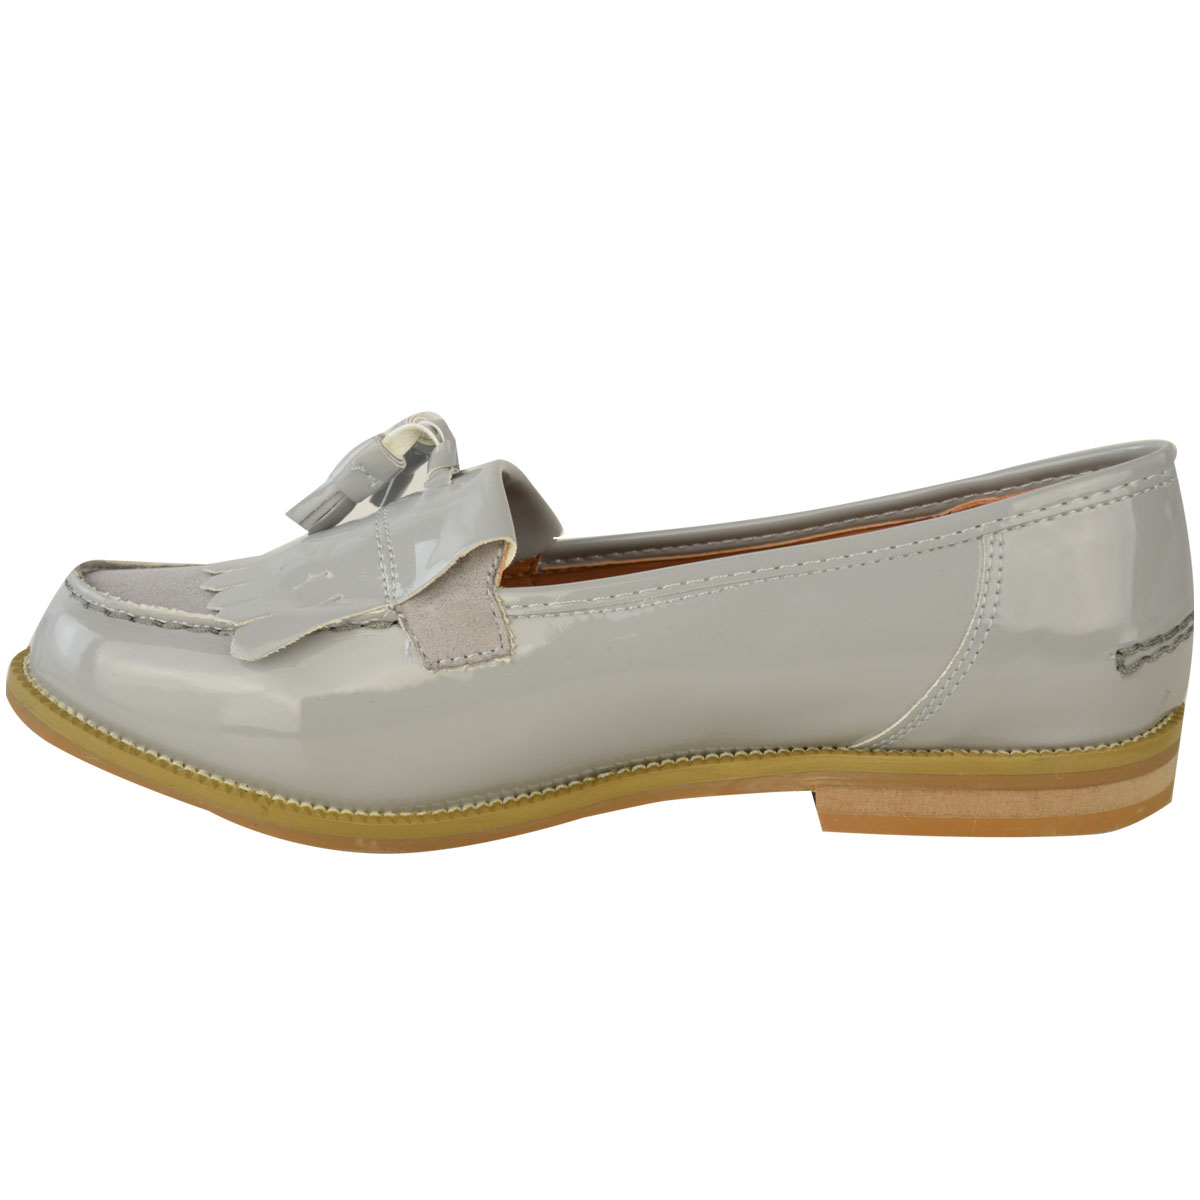 Womens-Ladies-Loafers-Brogues-Pumps-Casual-School-Office-Comfy-Work-Flats-Size thumbnail 20